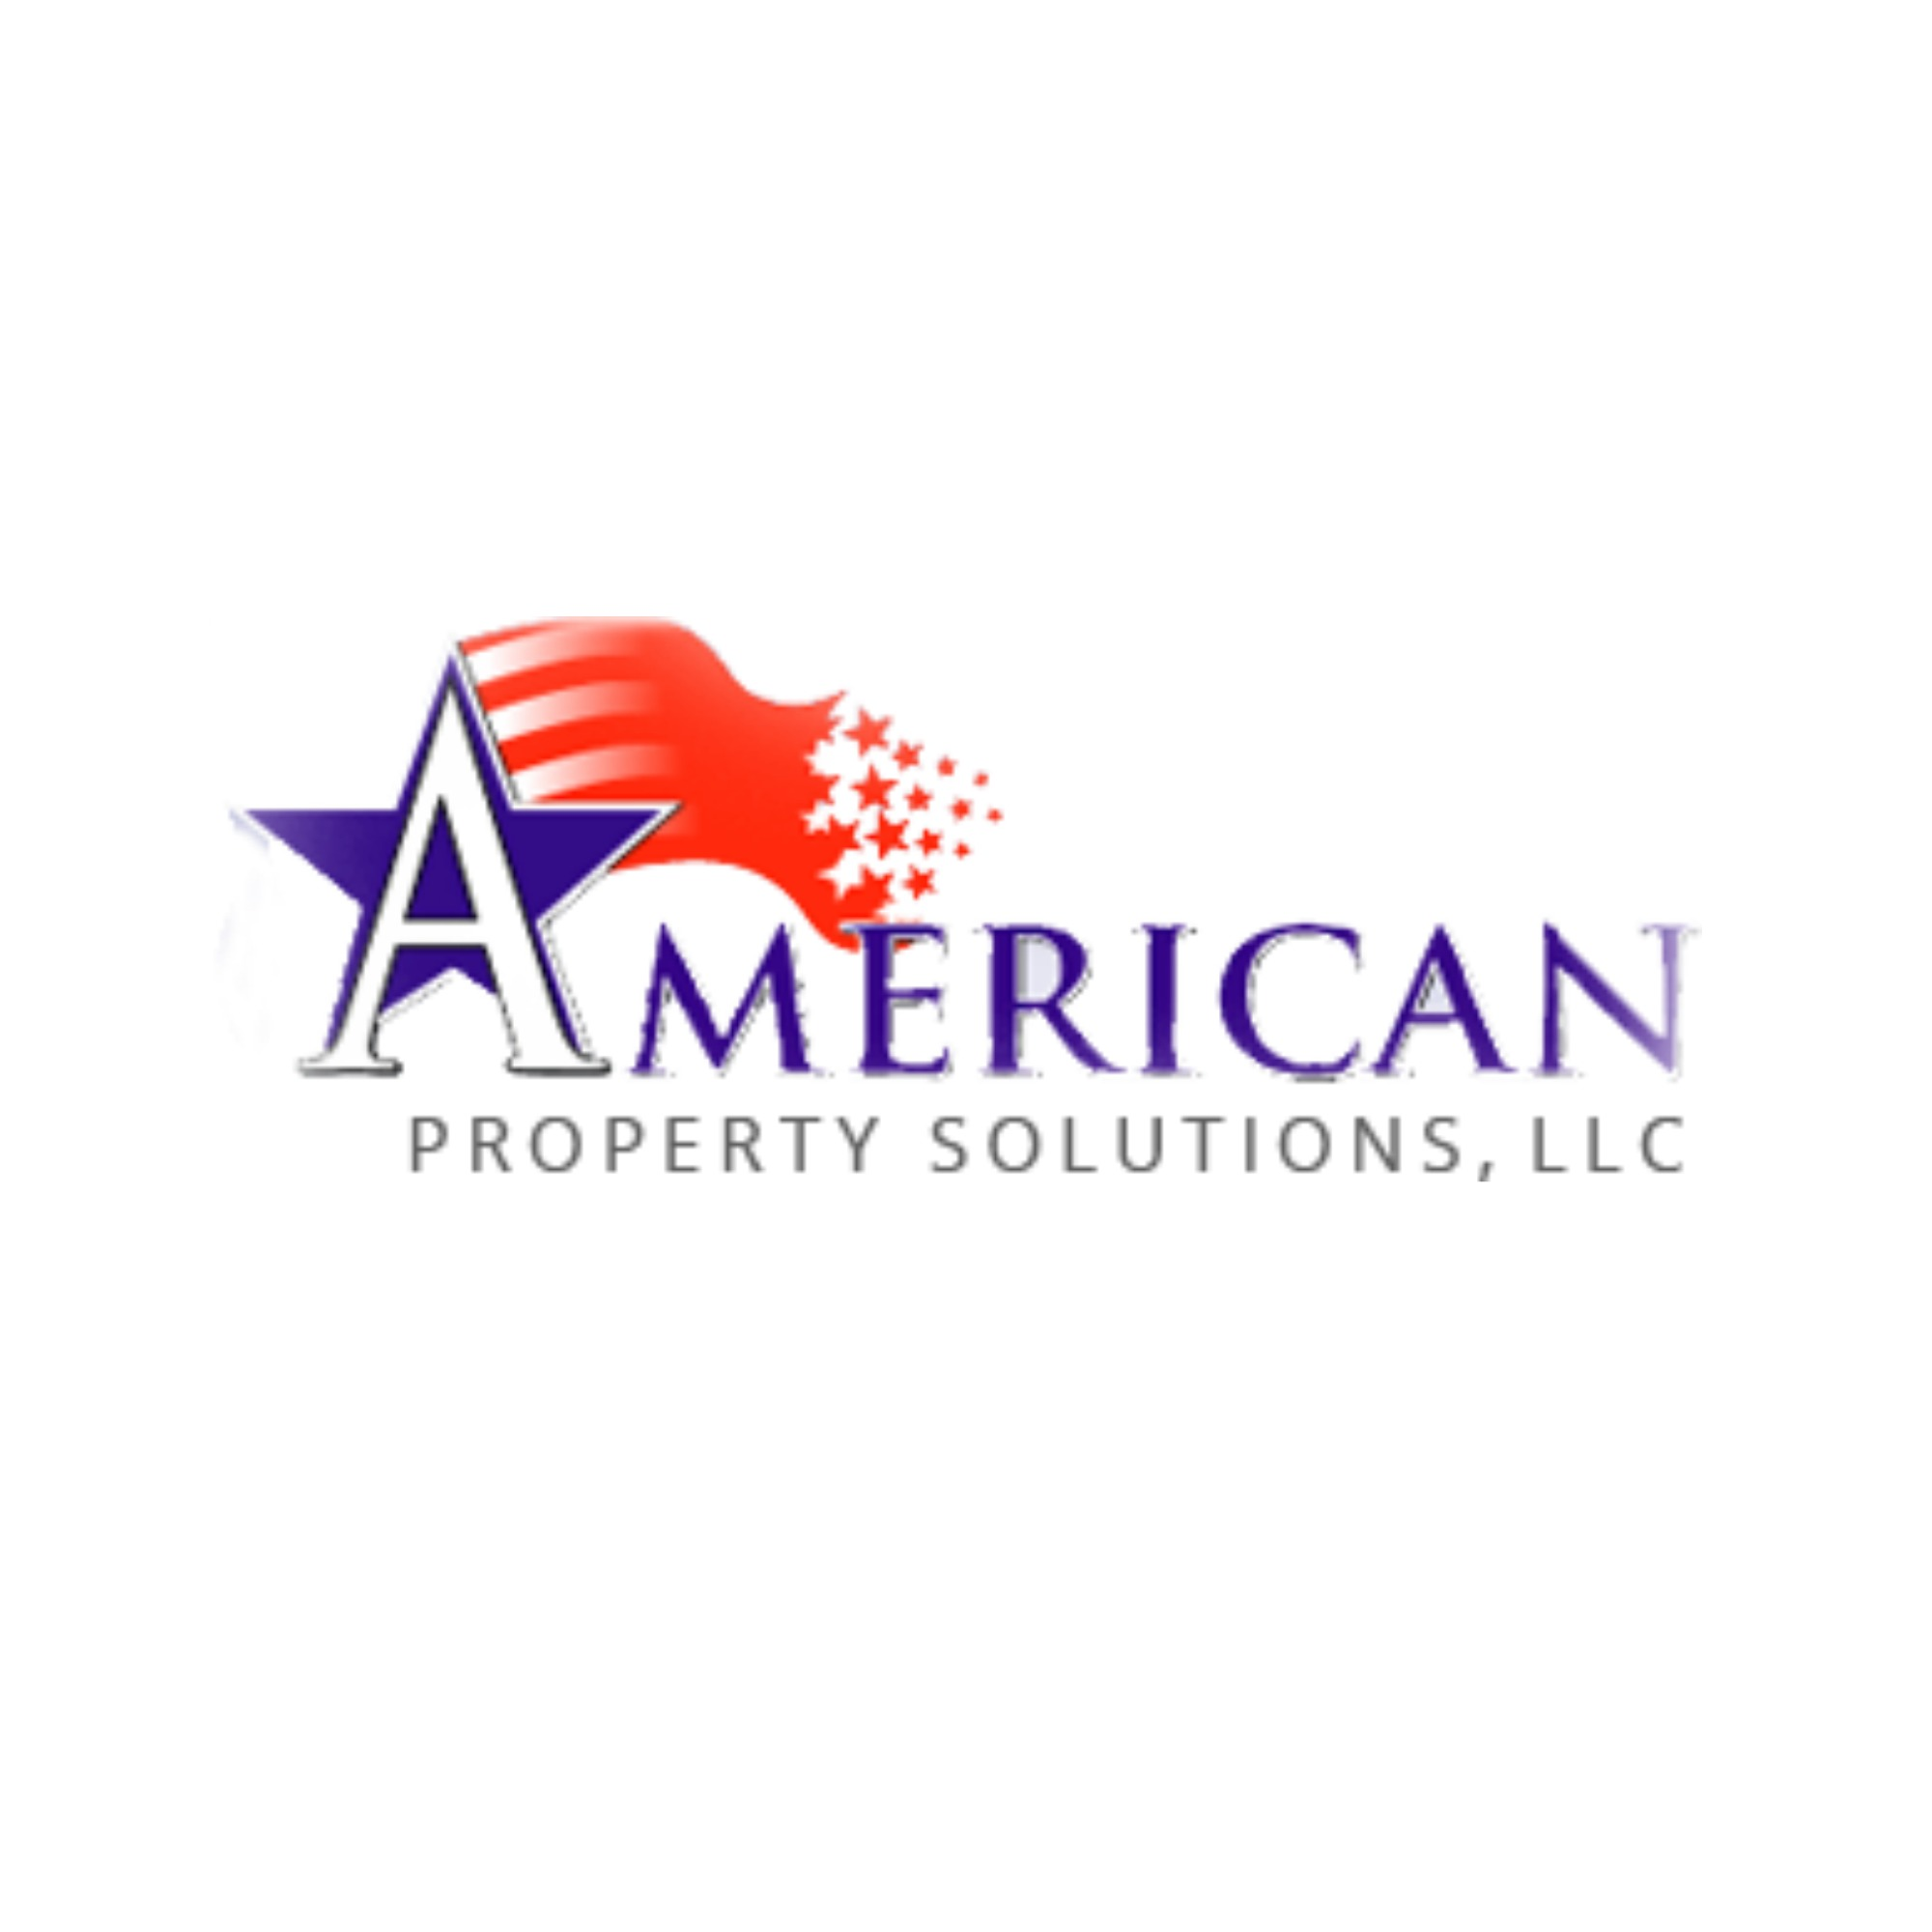 American Property Solutions - Black Owned